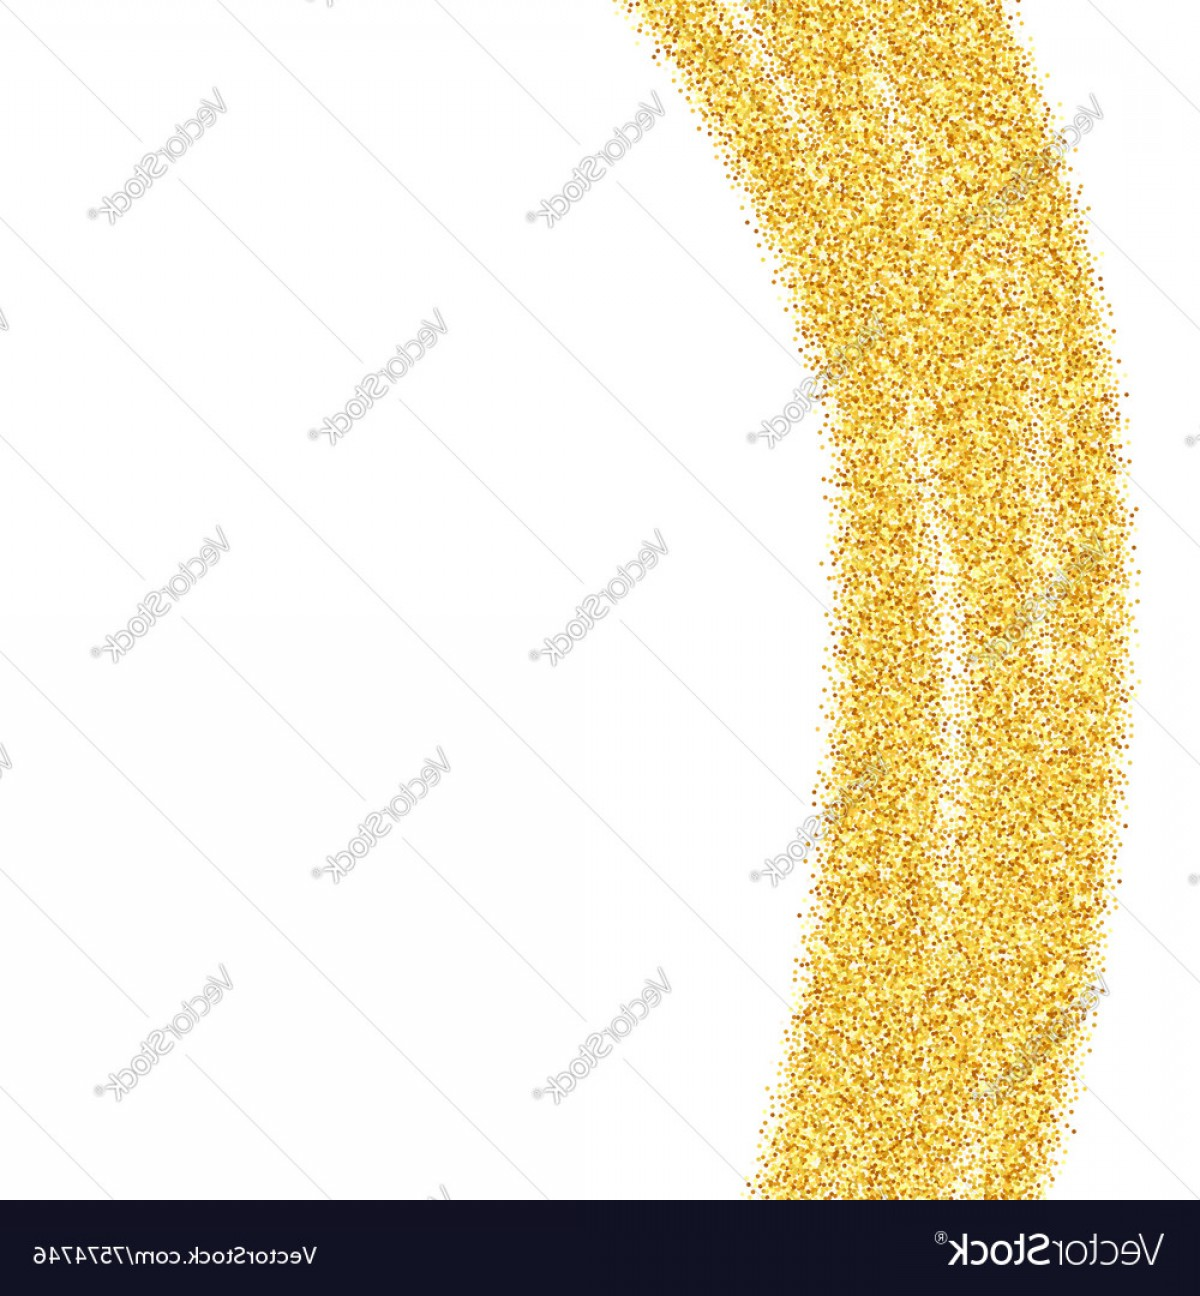 Vector Gold Dust: Abstract Gold Dust Glitter Background Vector